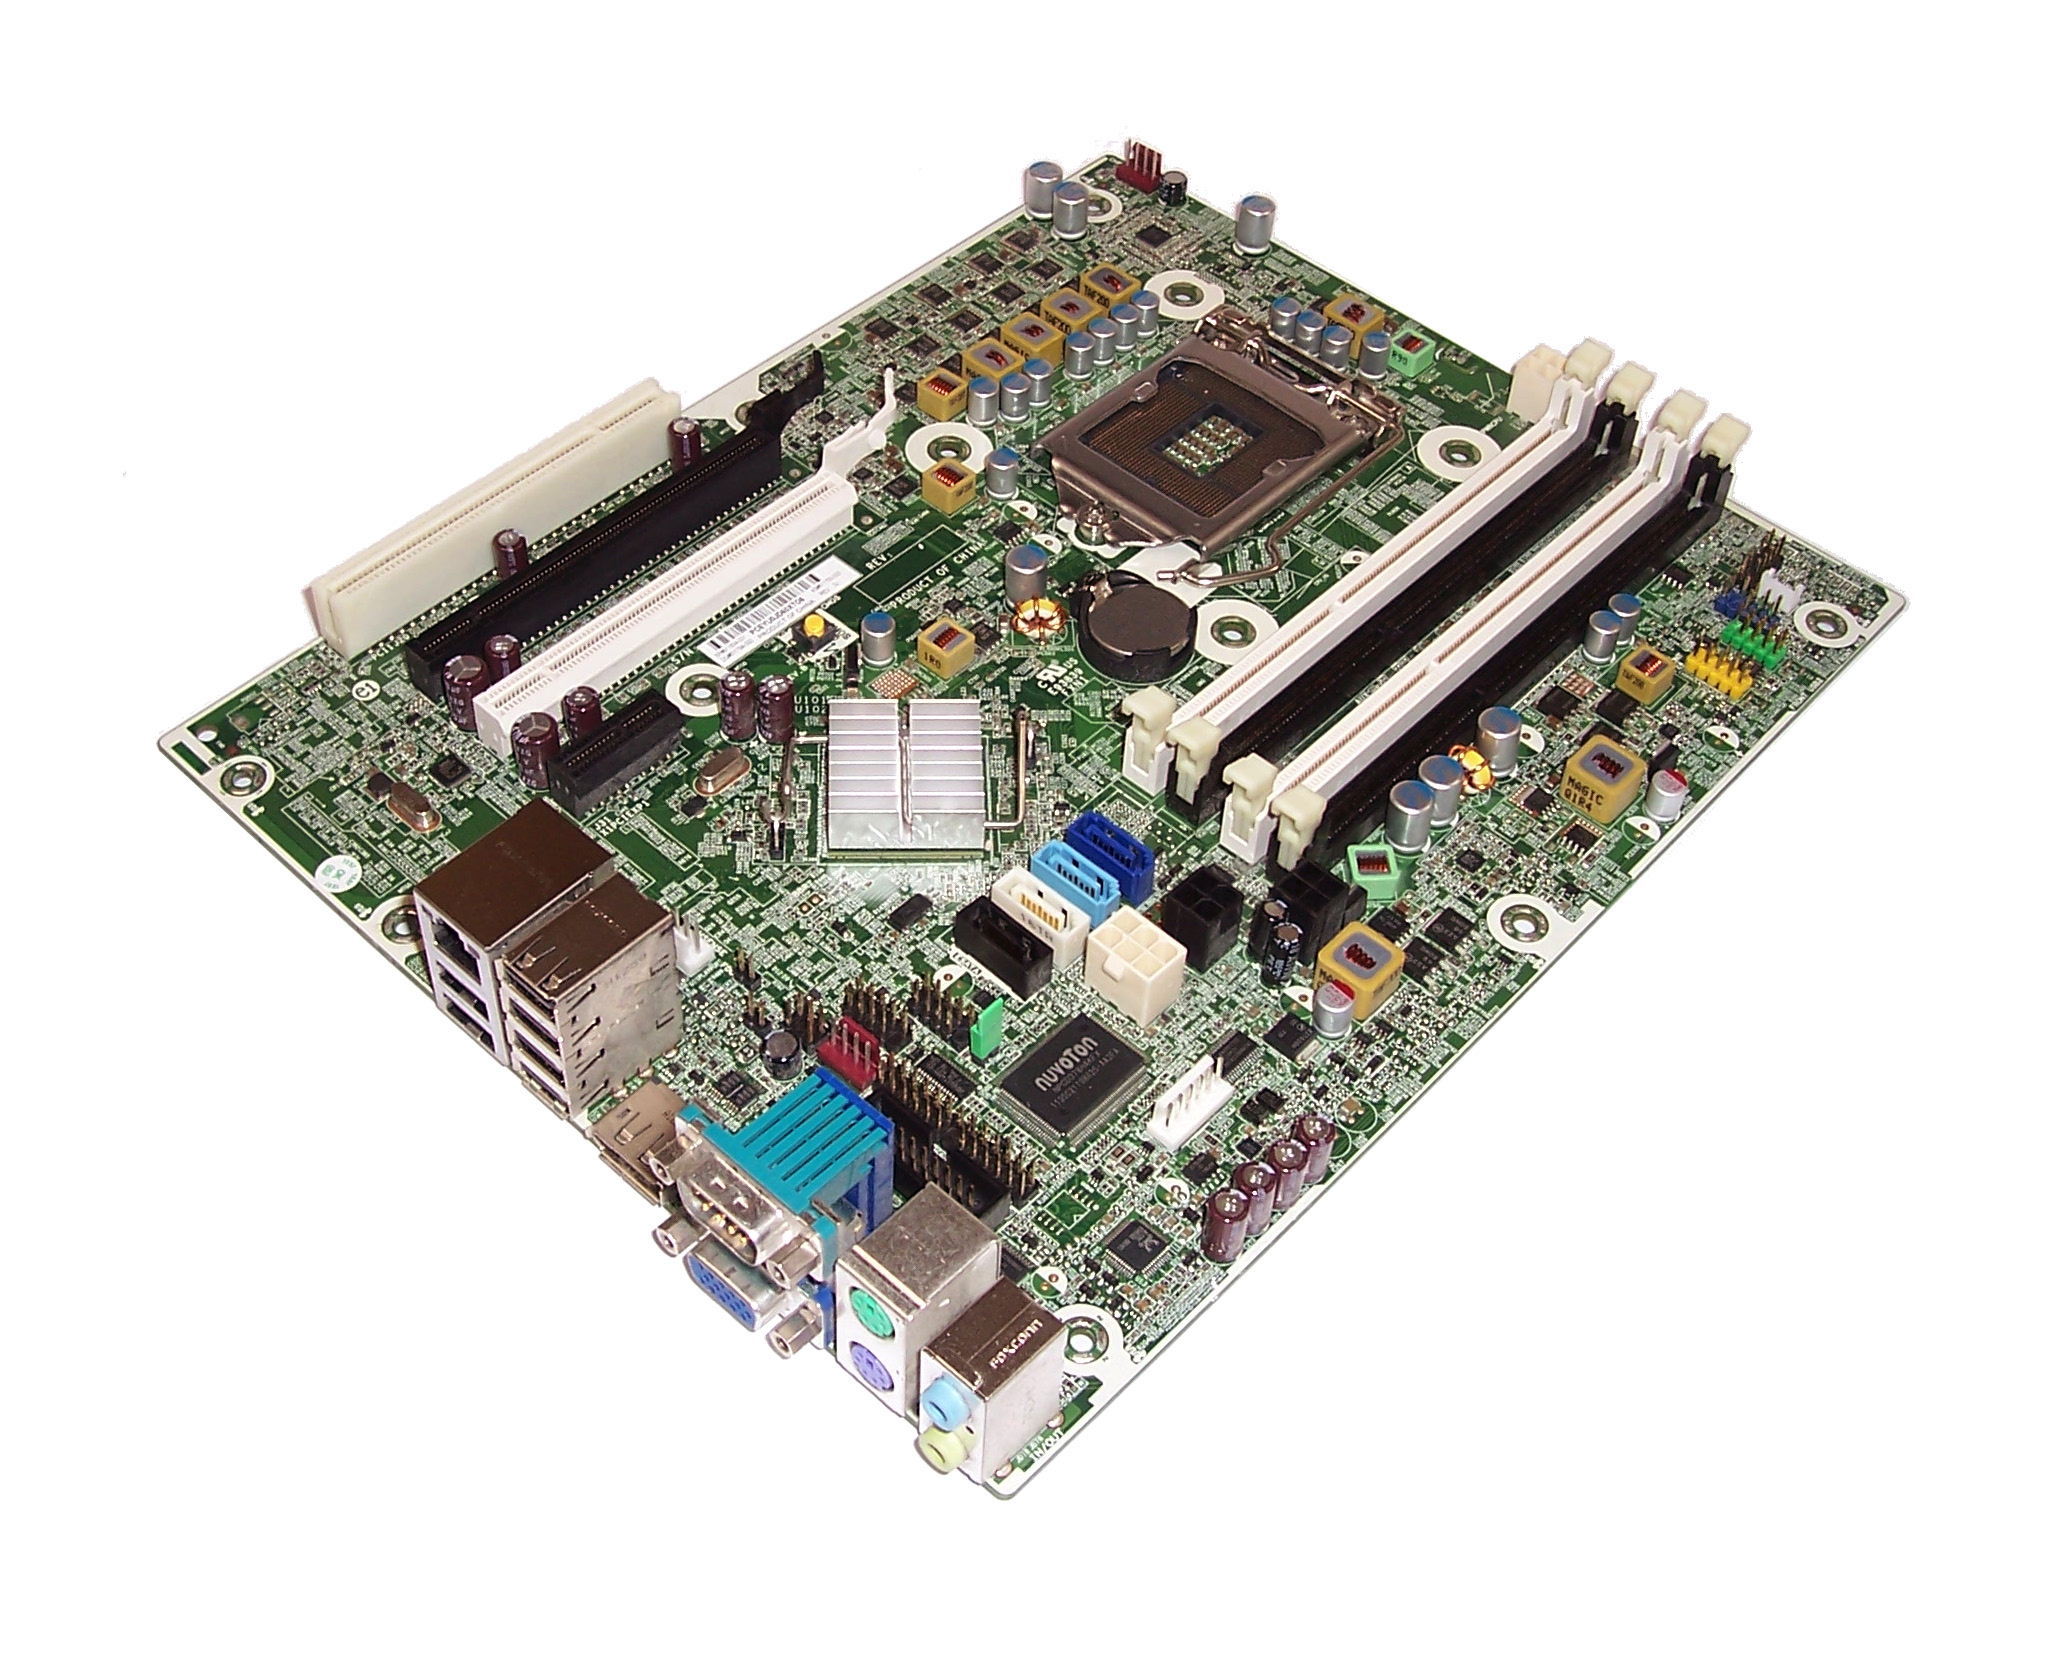 HP Compaq 611834-001 8200 Elite SFF Socket H2 (LGA1155) Motherboard - 611793-003